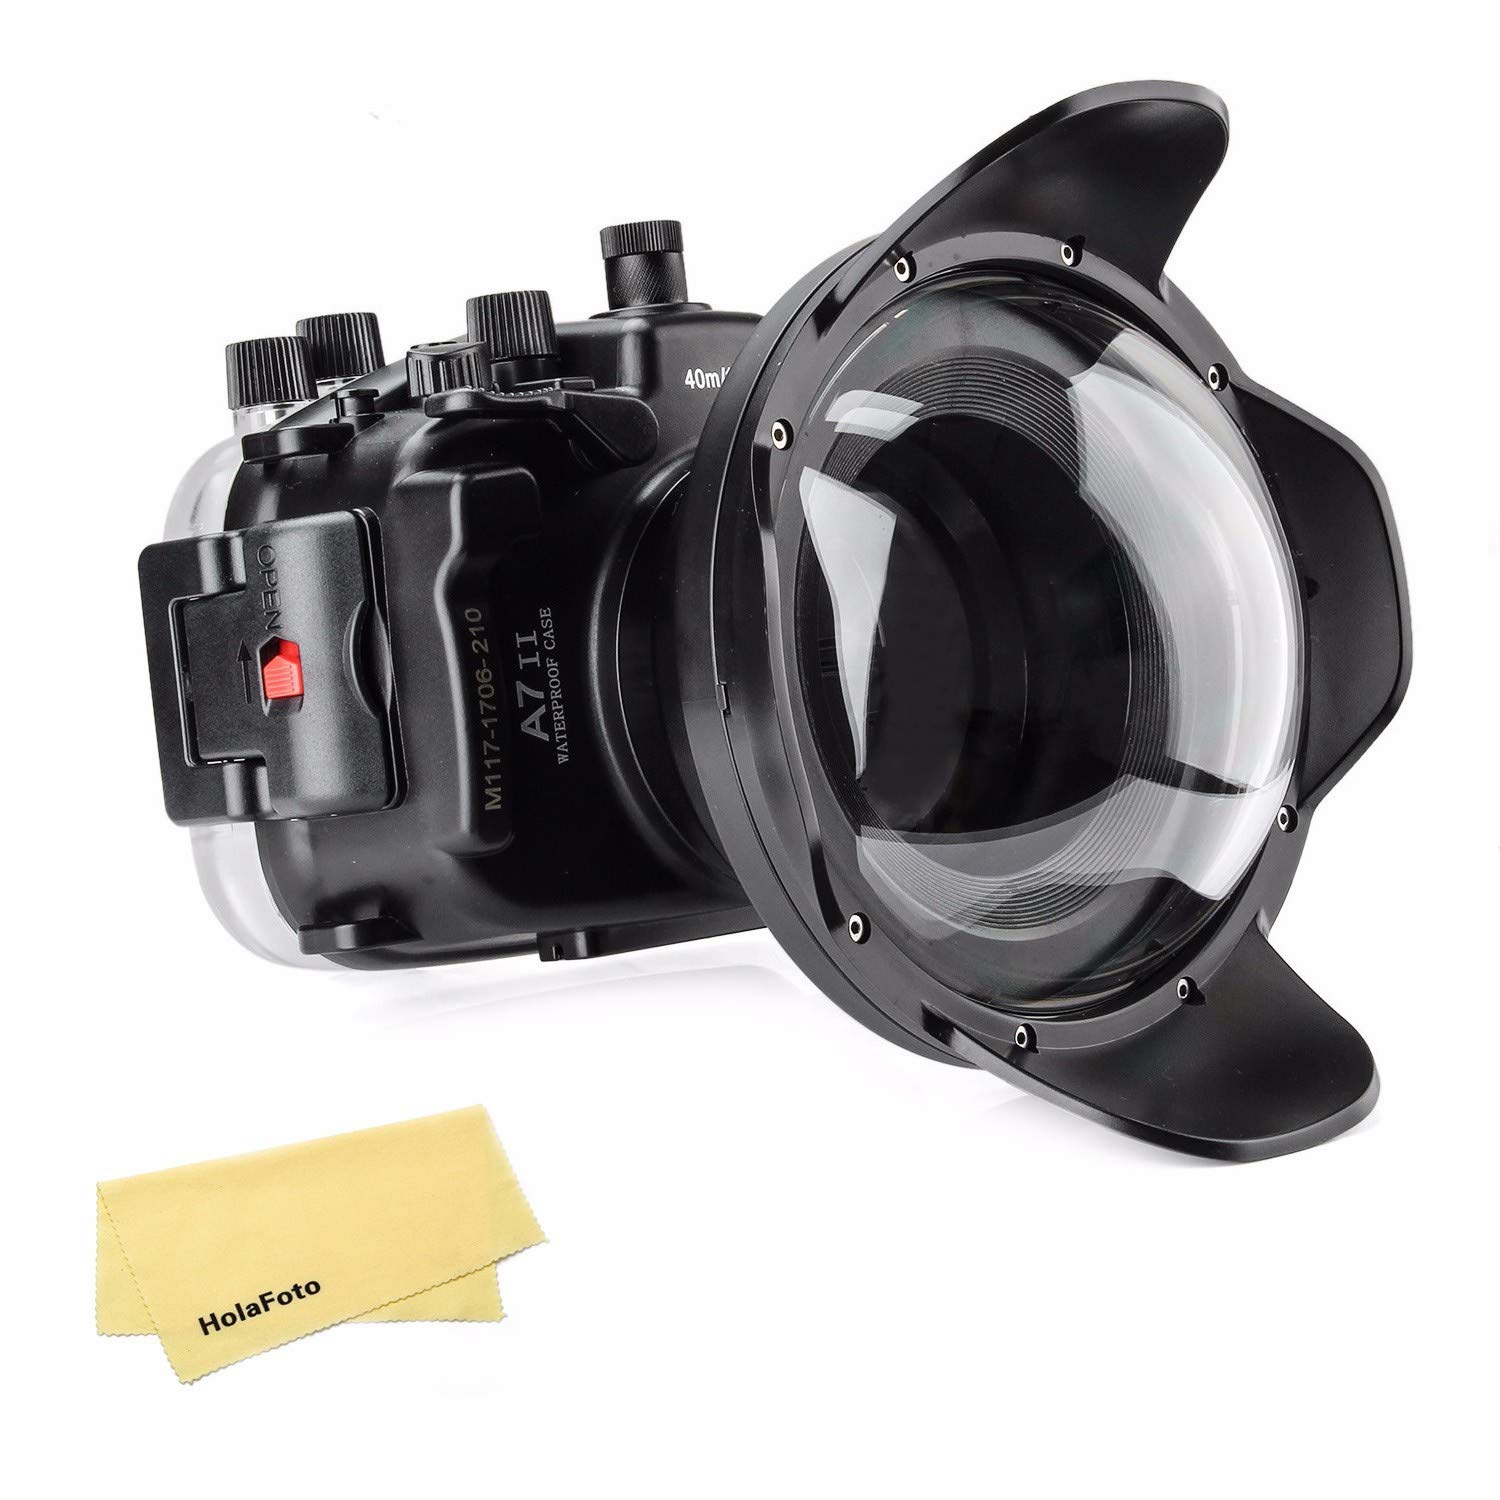 Meikon Underwater Camera Housing Case w/Dome Port Kit, 40M/130FT Waterproof Housing for Sony A7 II A7R II A7S II 28-70mm Lens by MEIKON